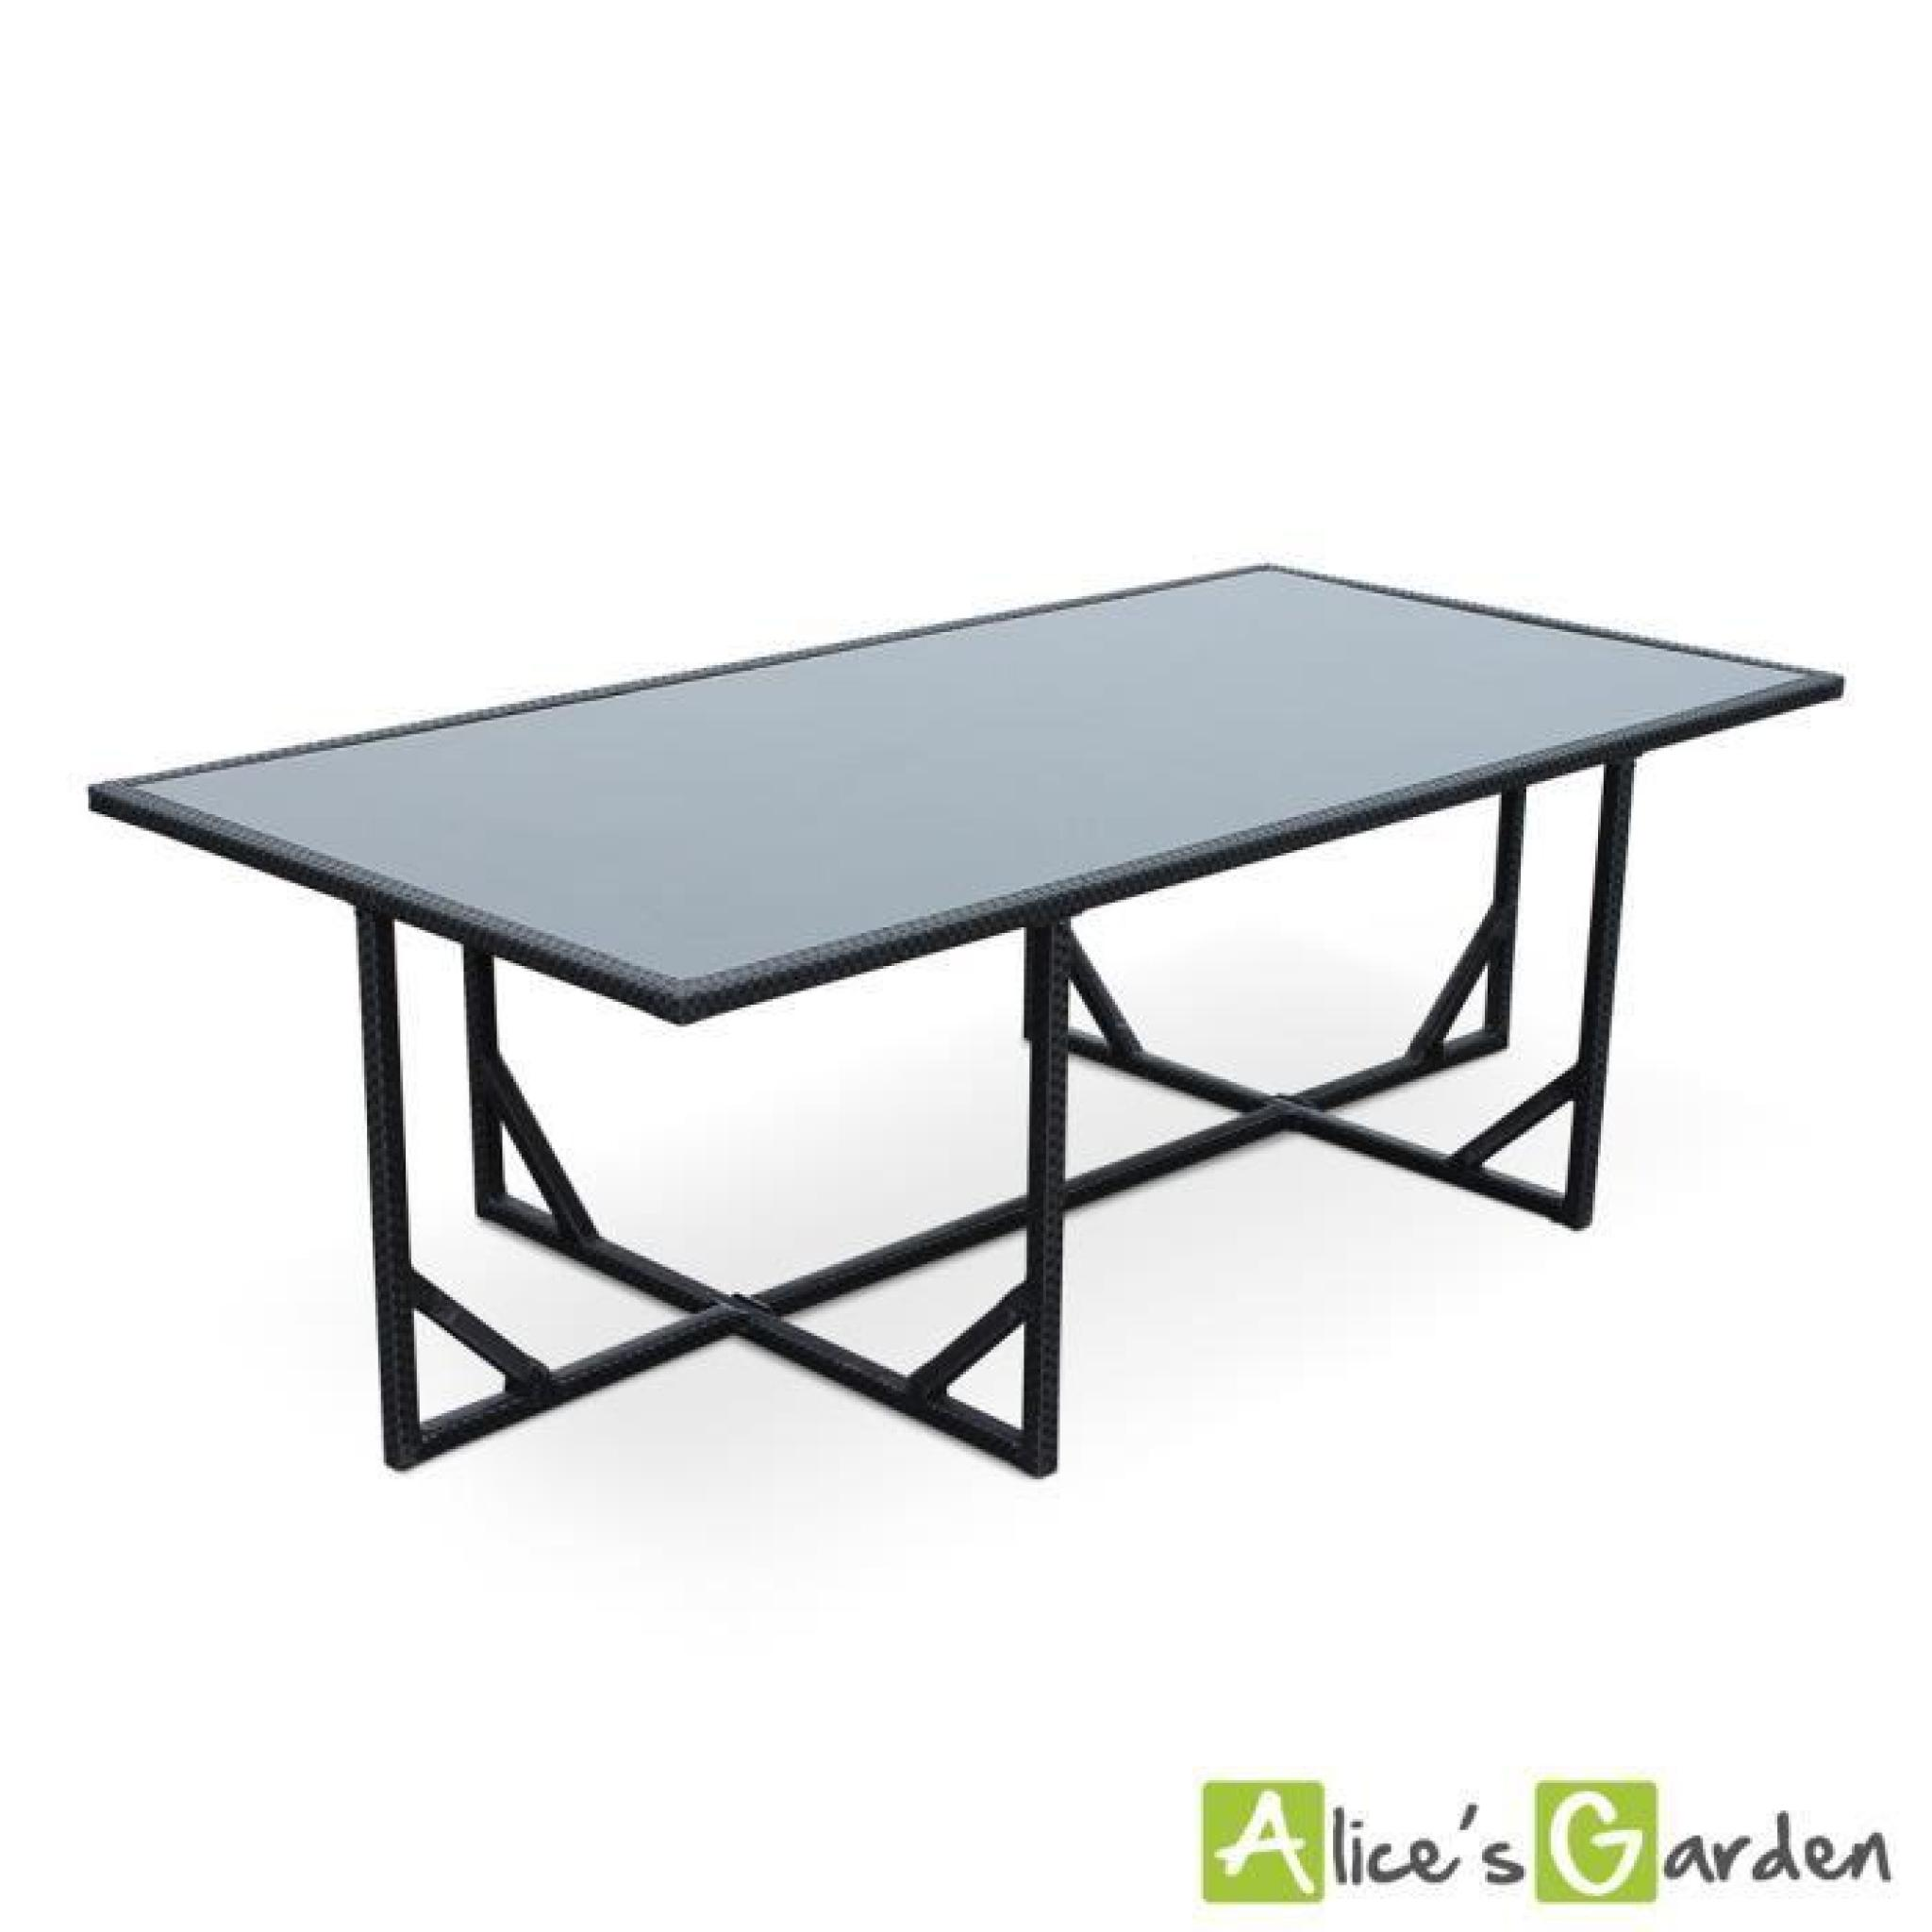 Table resine tressee maison design - Table de jardin resine tressee 4 places ...